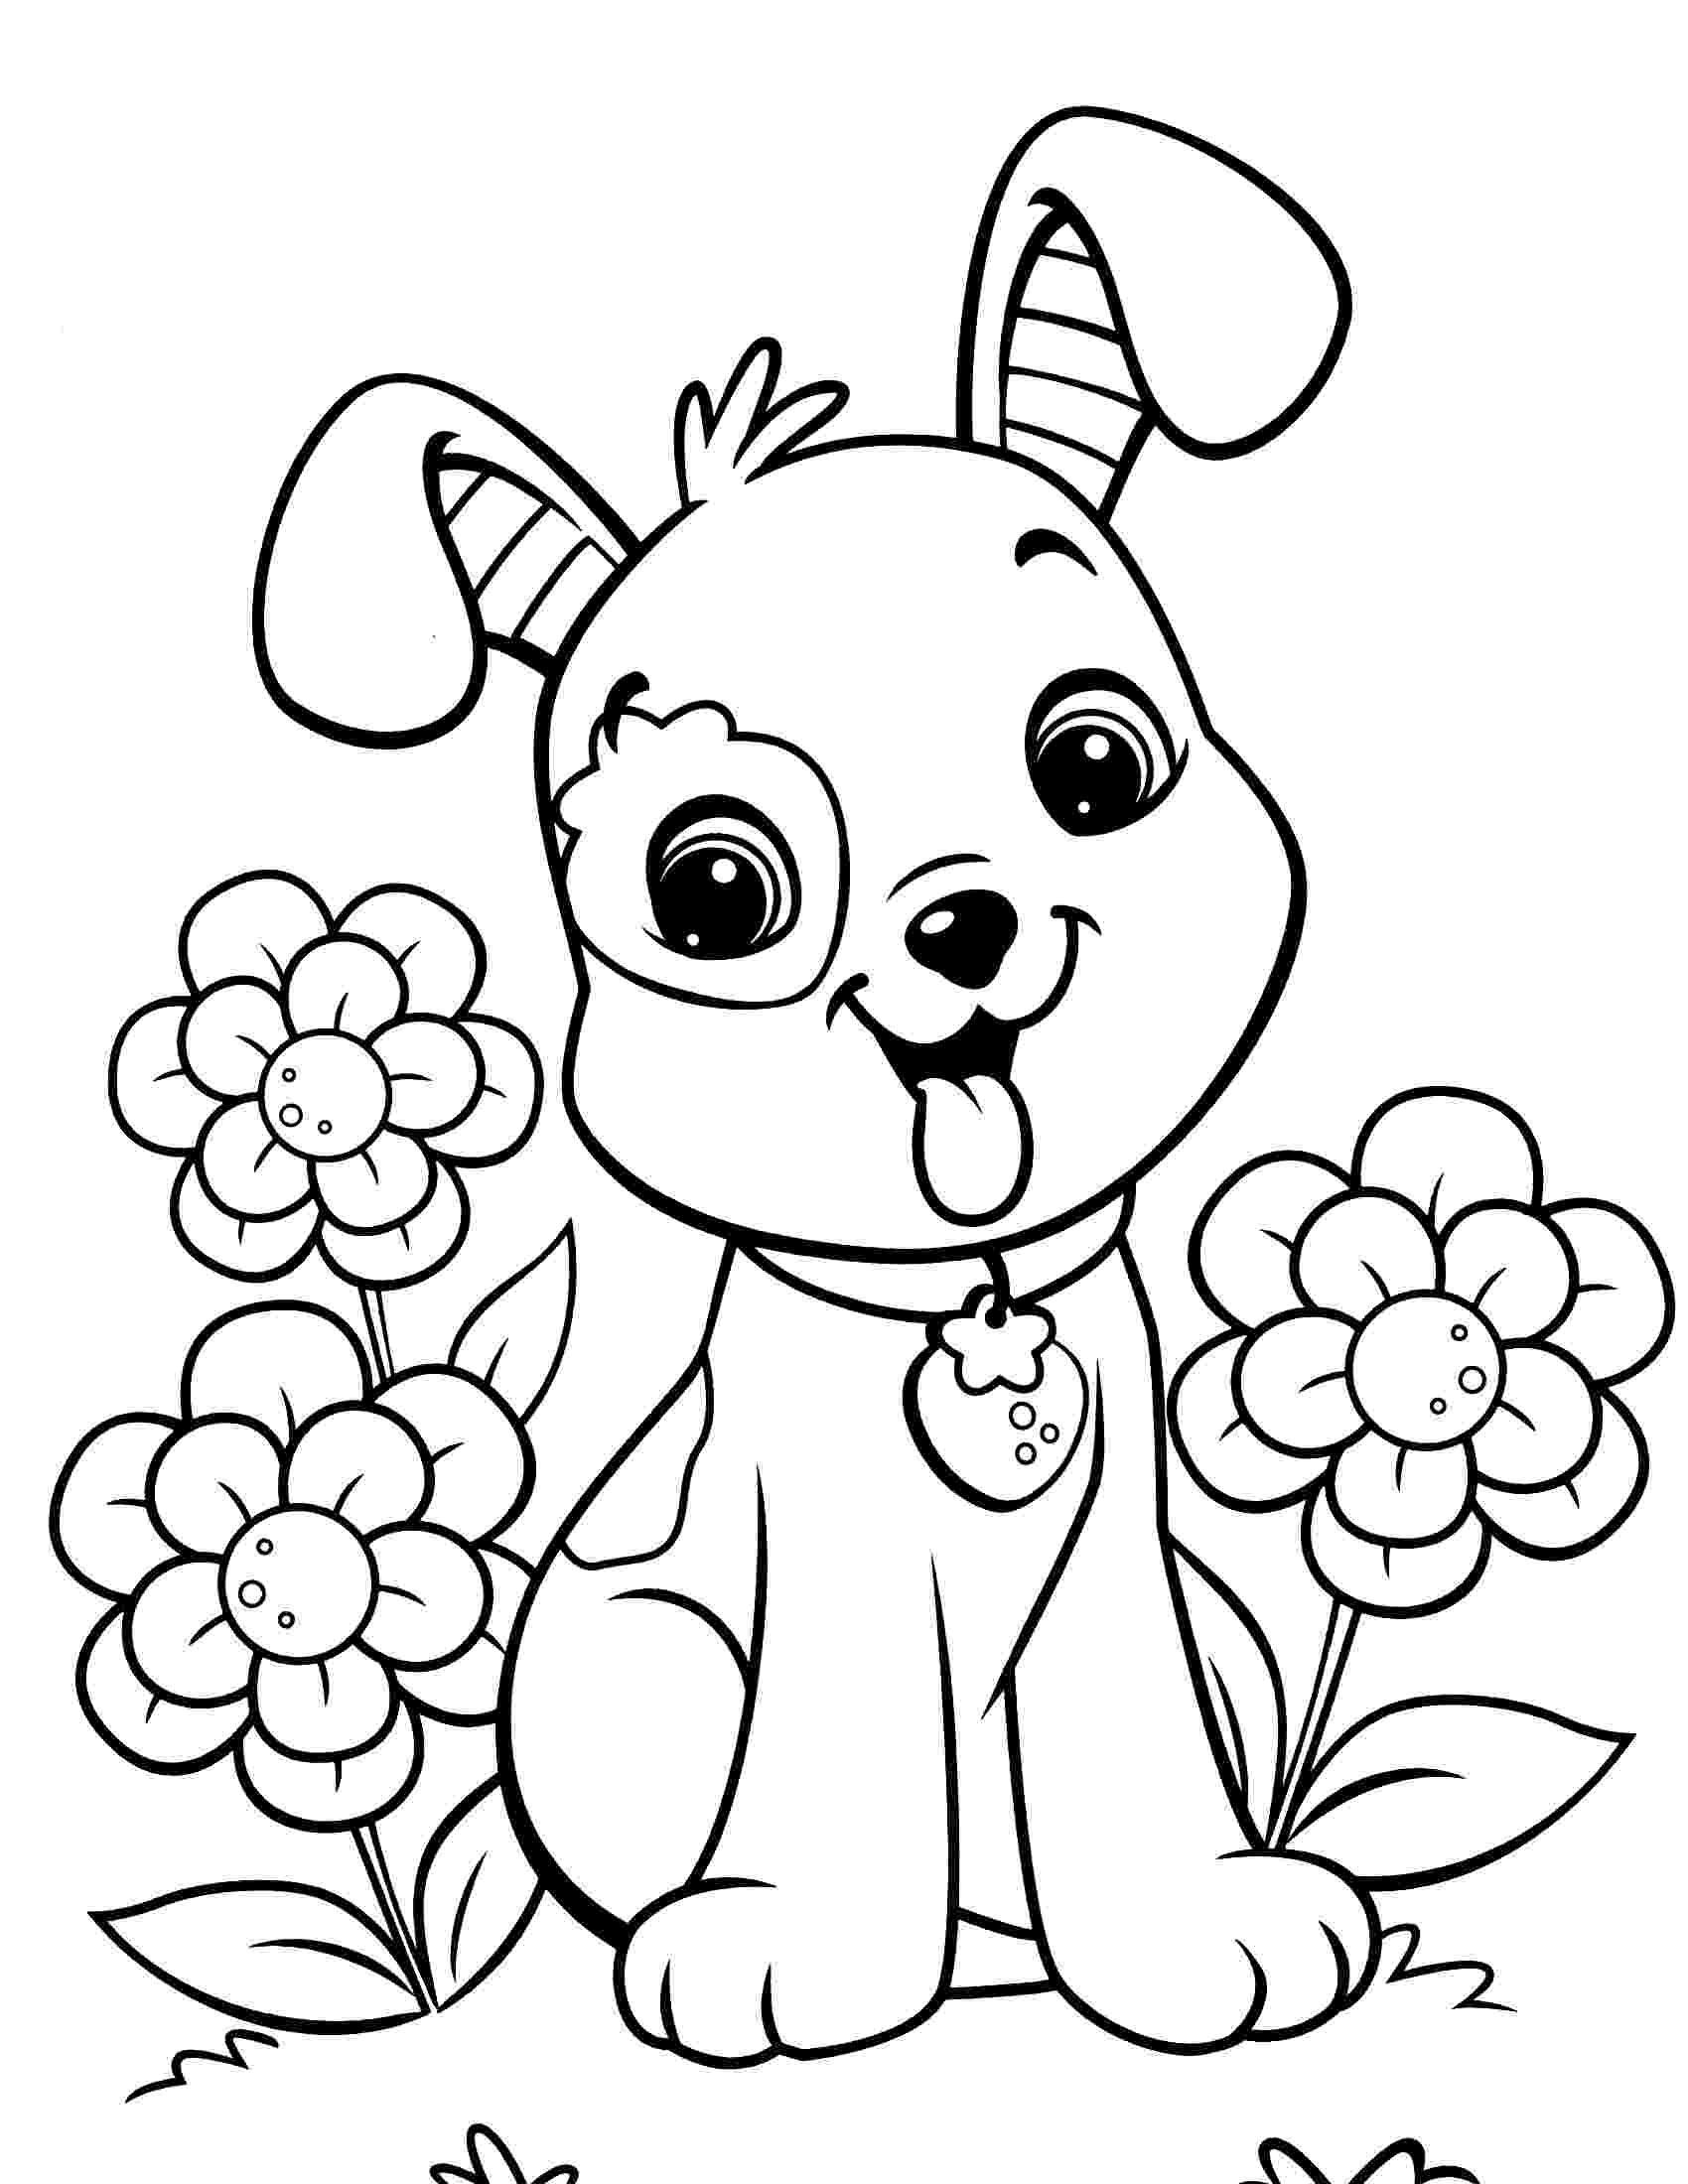 cute dogs coloring pages cute dog coloring pages to download and print for free dogs pages coloring cute